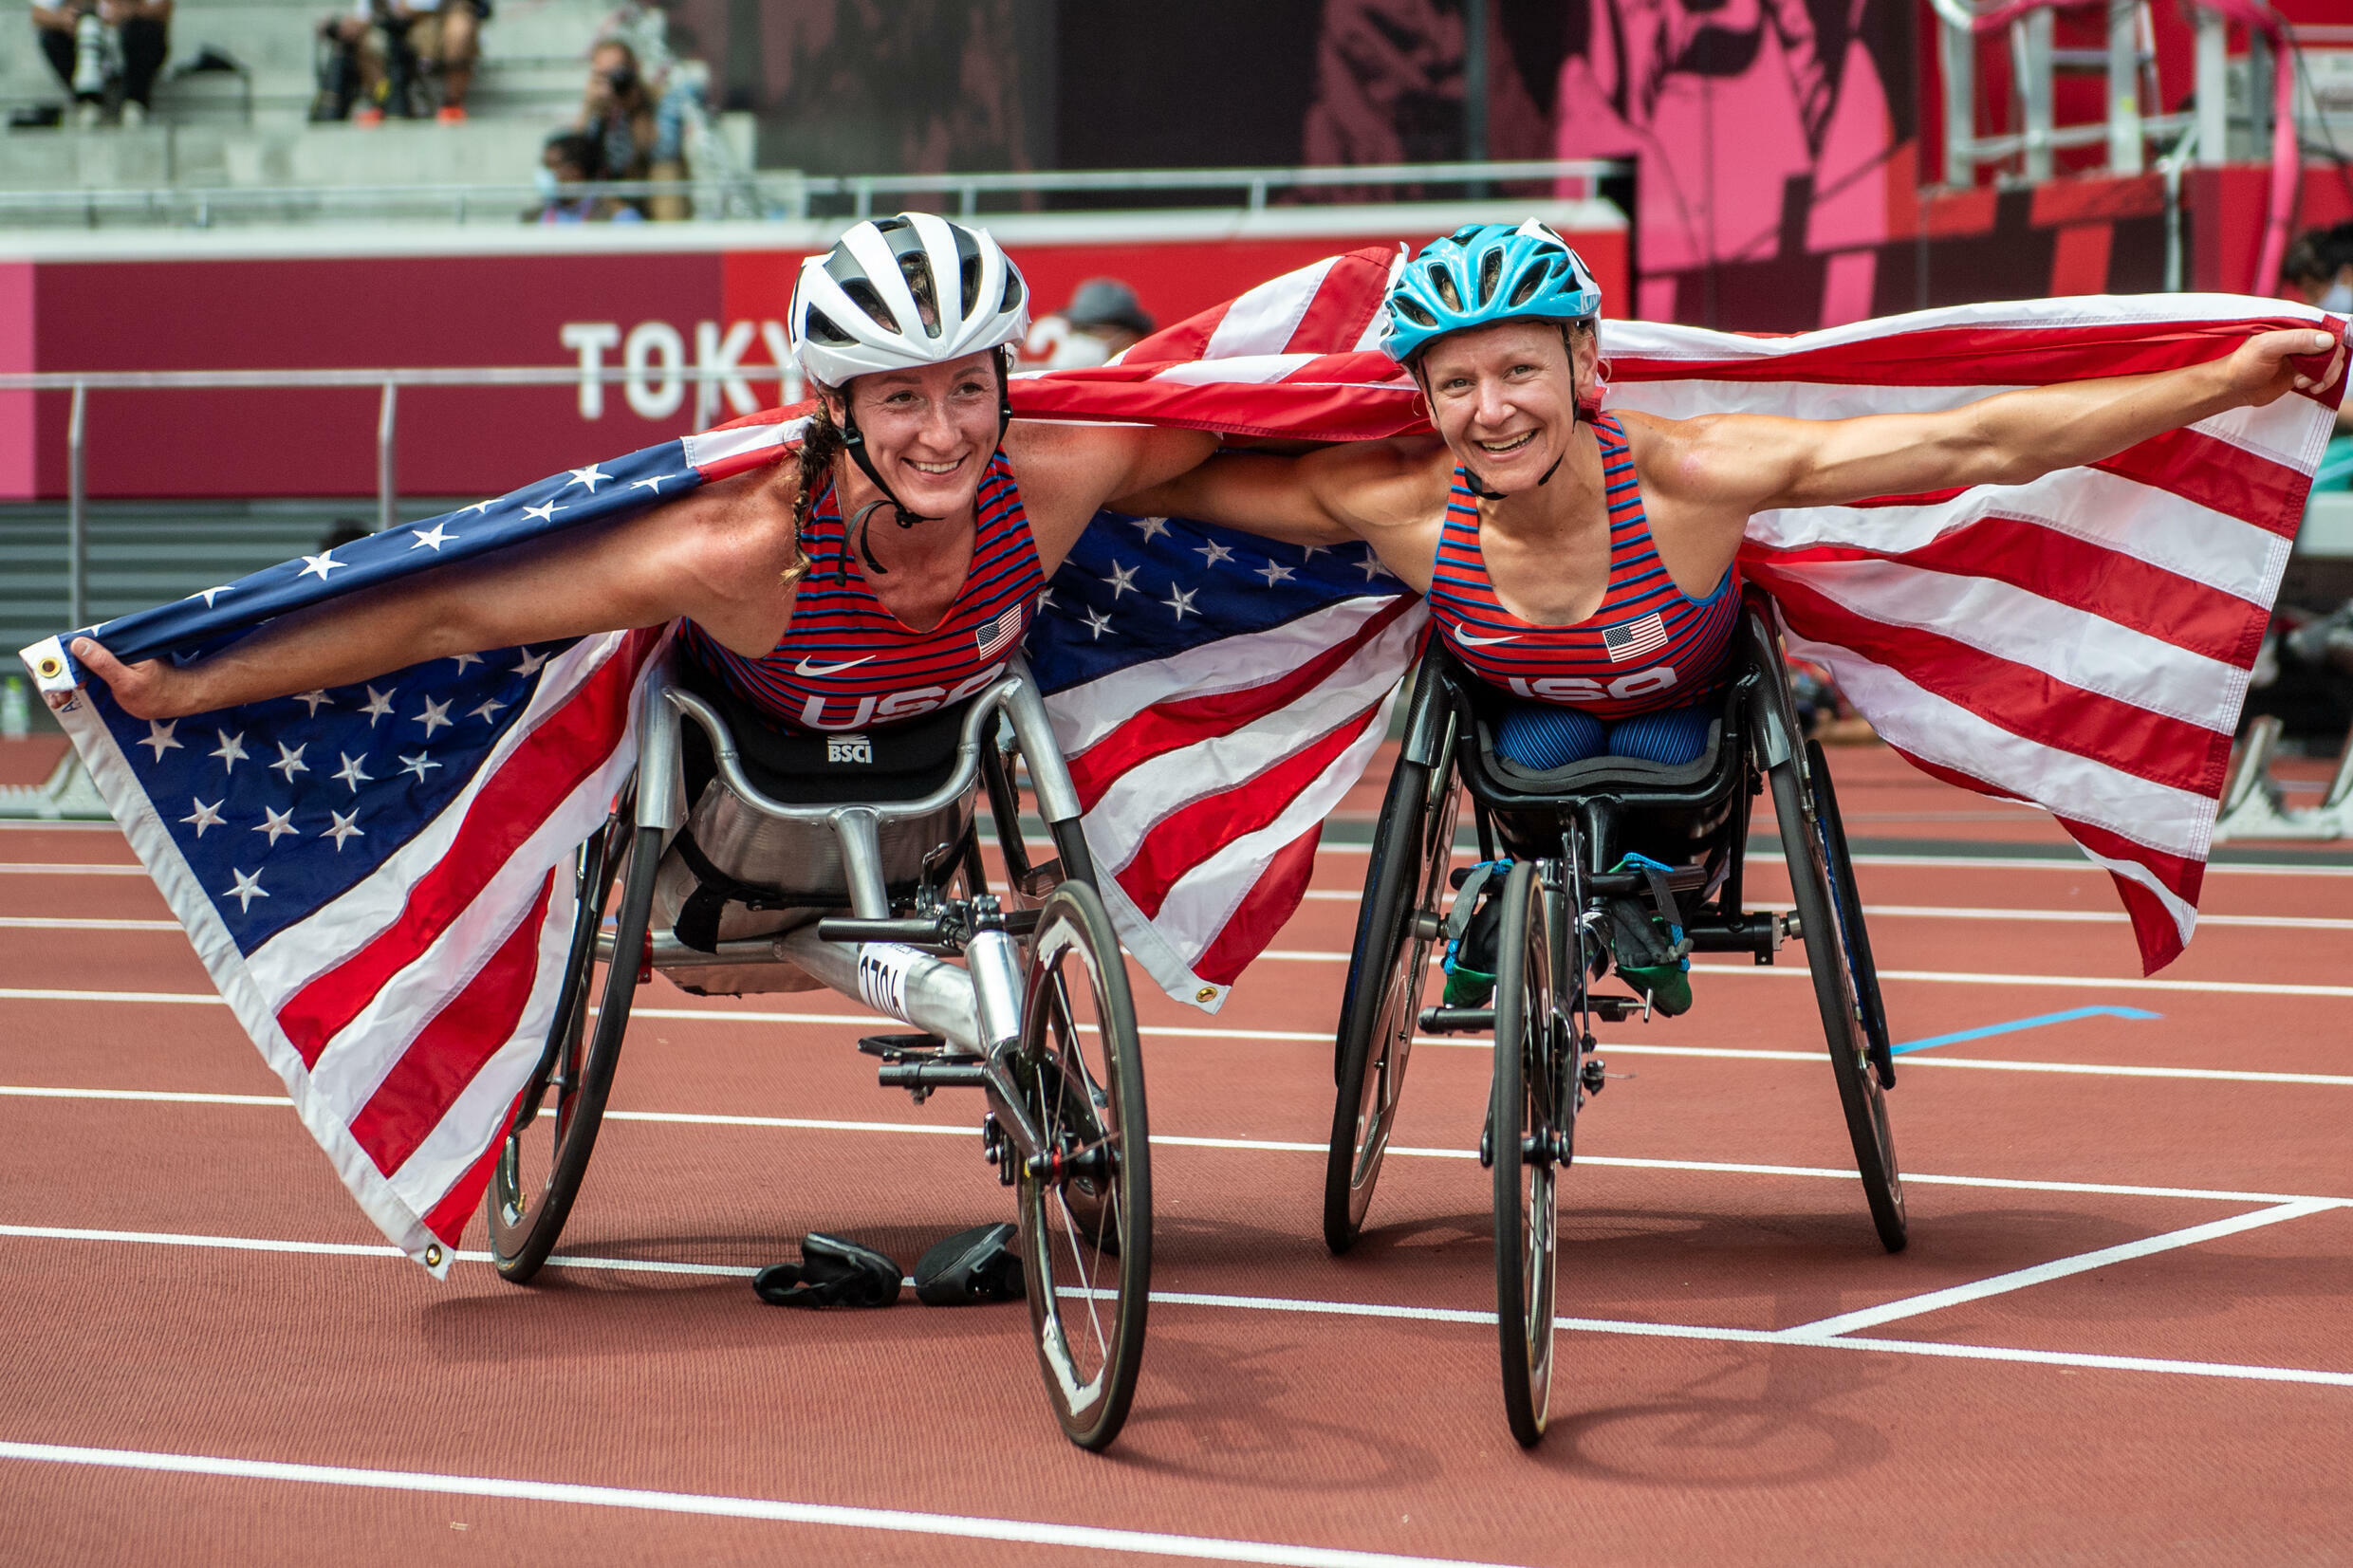 Tatyana McFadden (L) and Susannah Scaroni celebrate after winning bronze and gold in the women's 5,000m T54 respectively